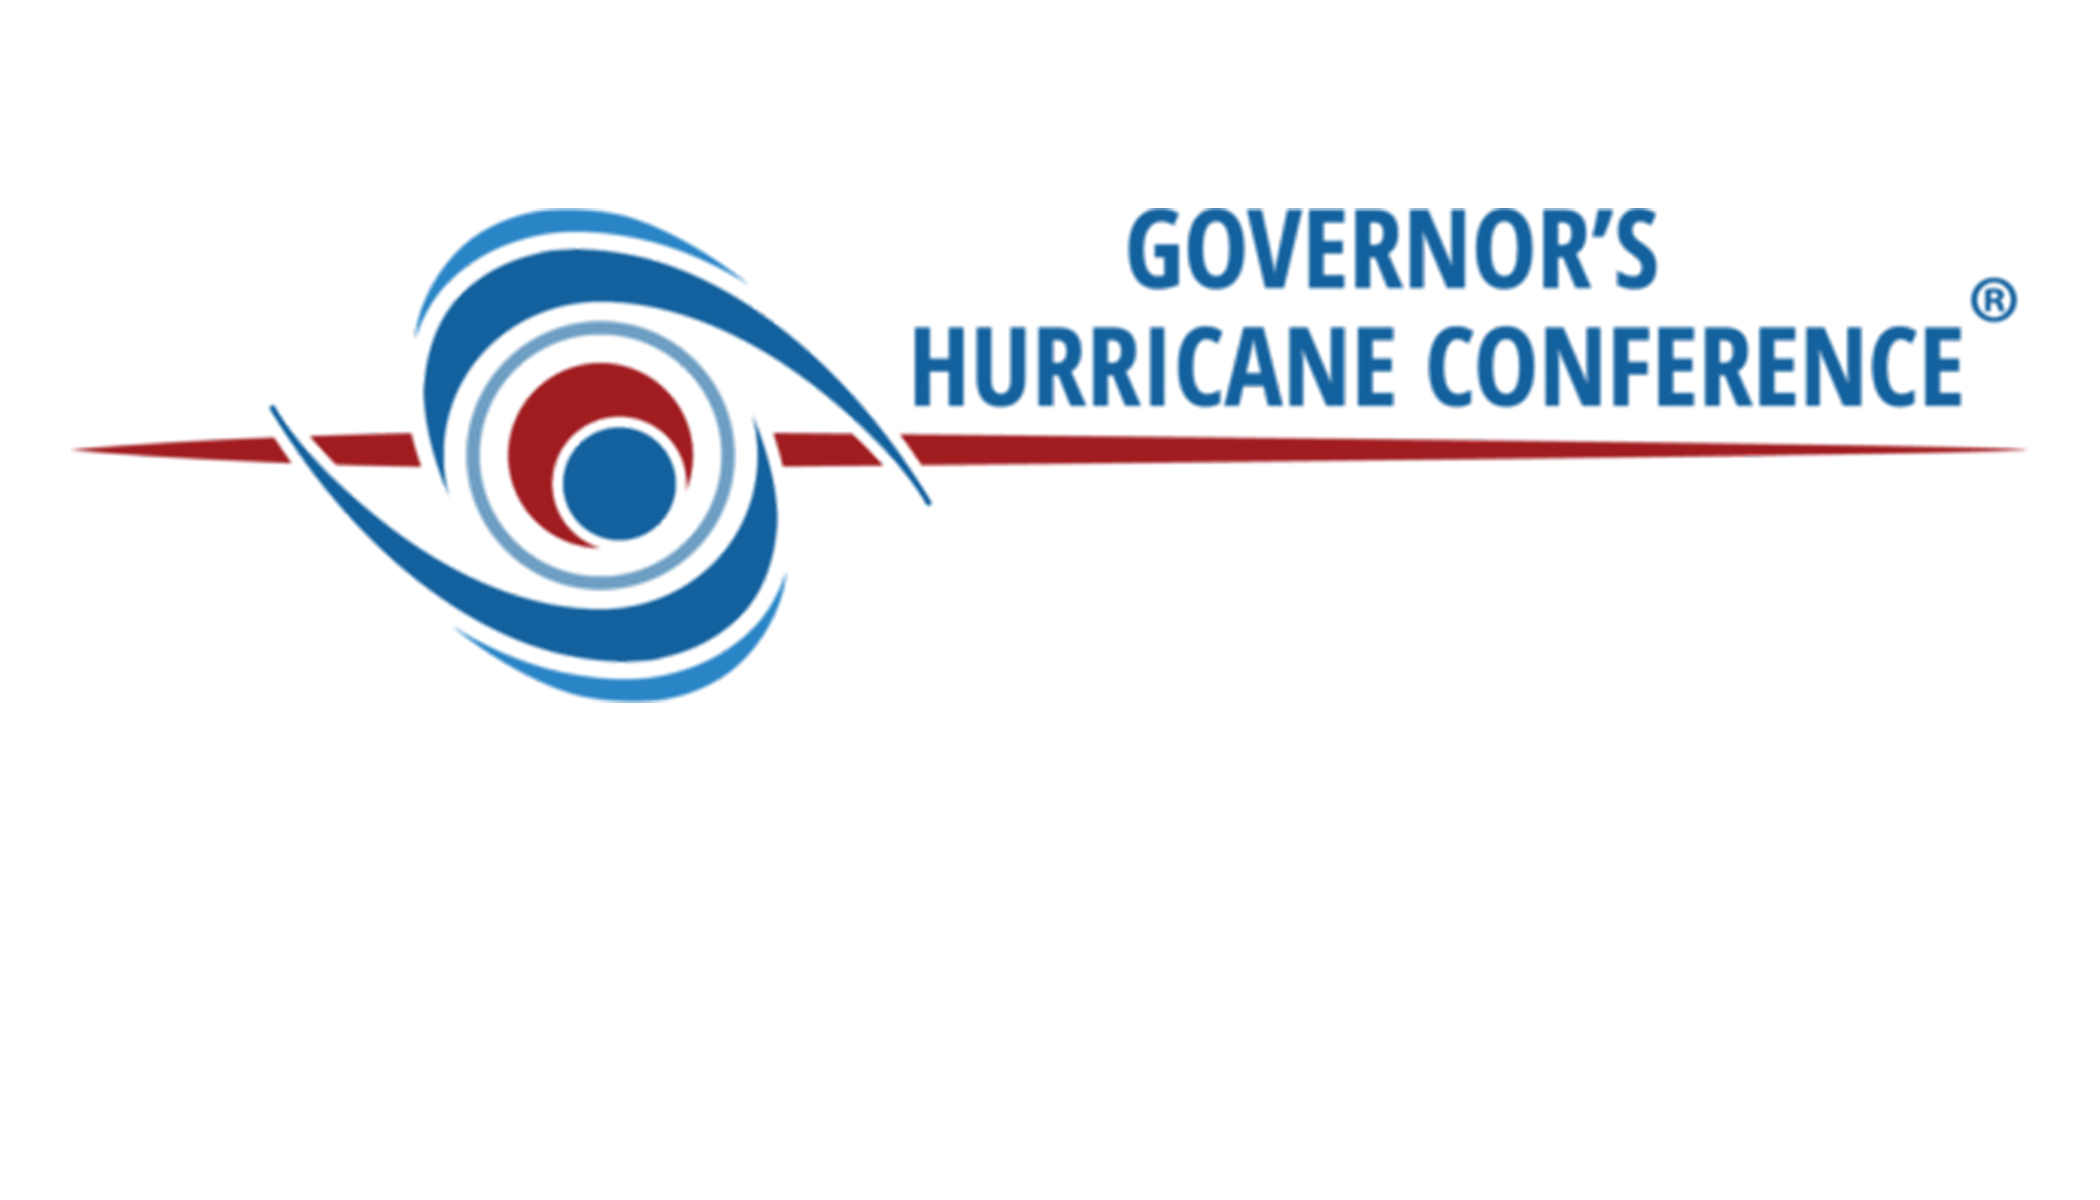 Pix4D at Governors Hurricane Conference 2020